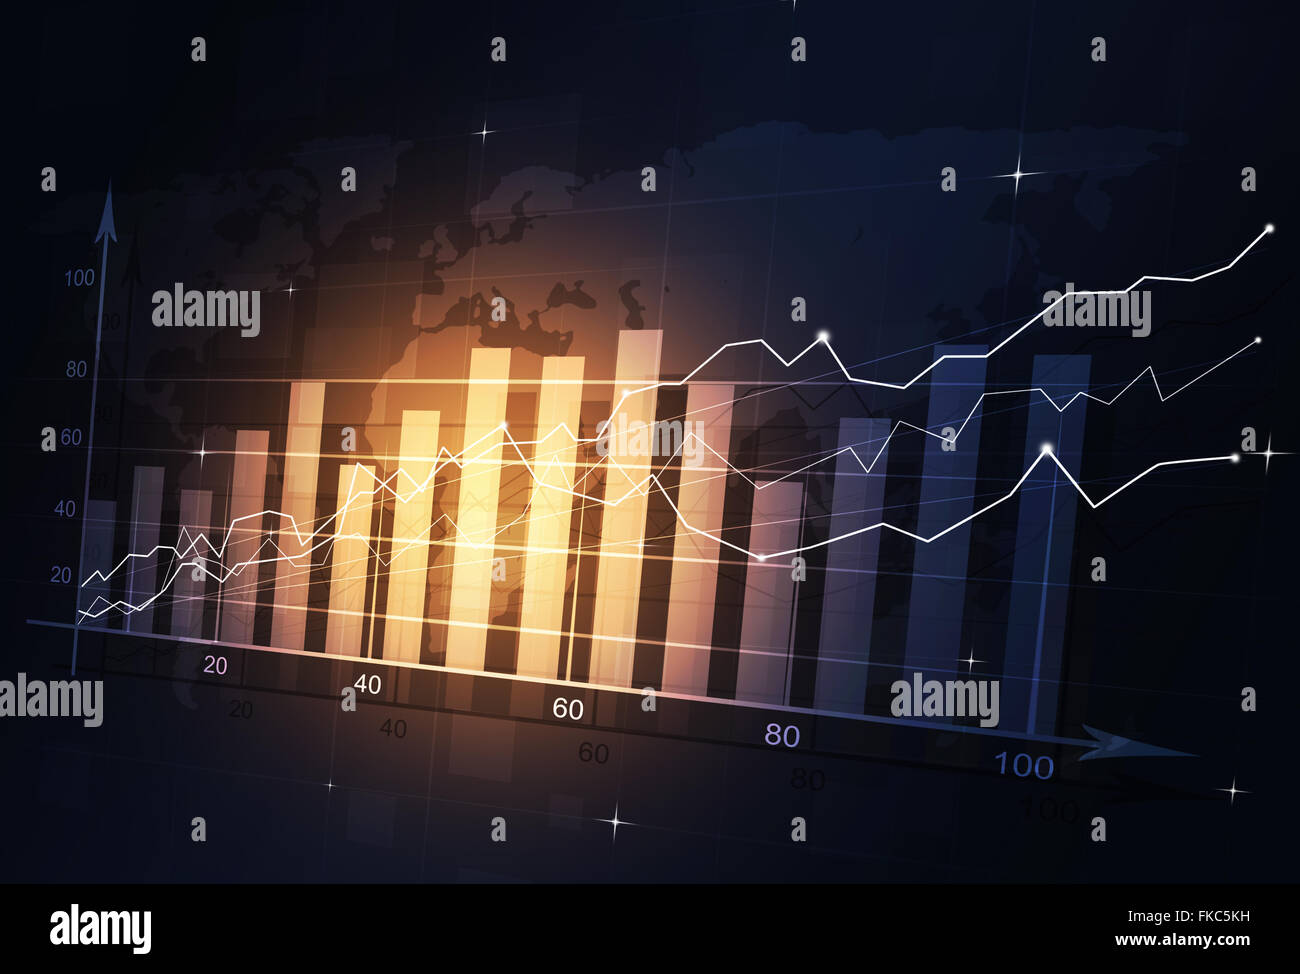 abstract stock market finance diagram on dark background - Stock Image